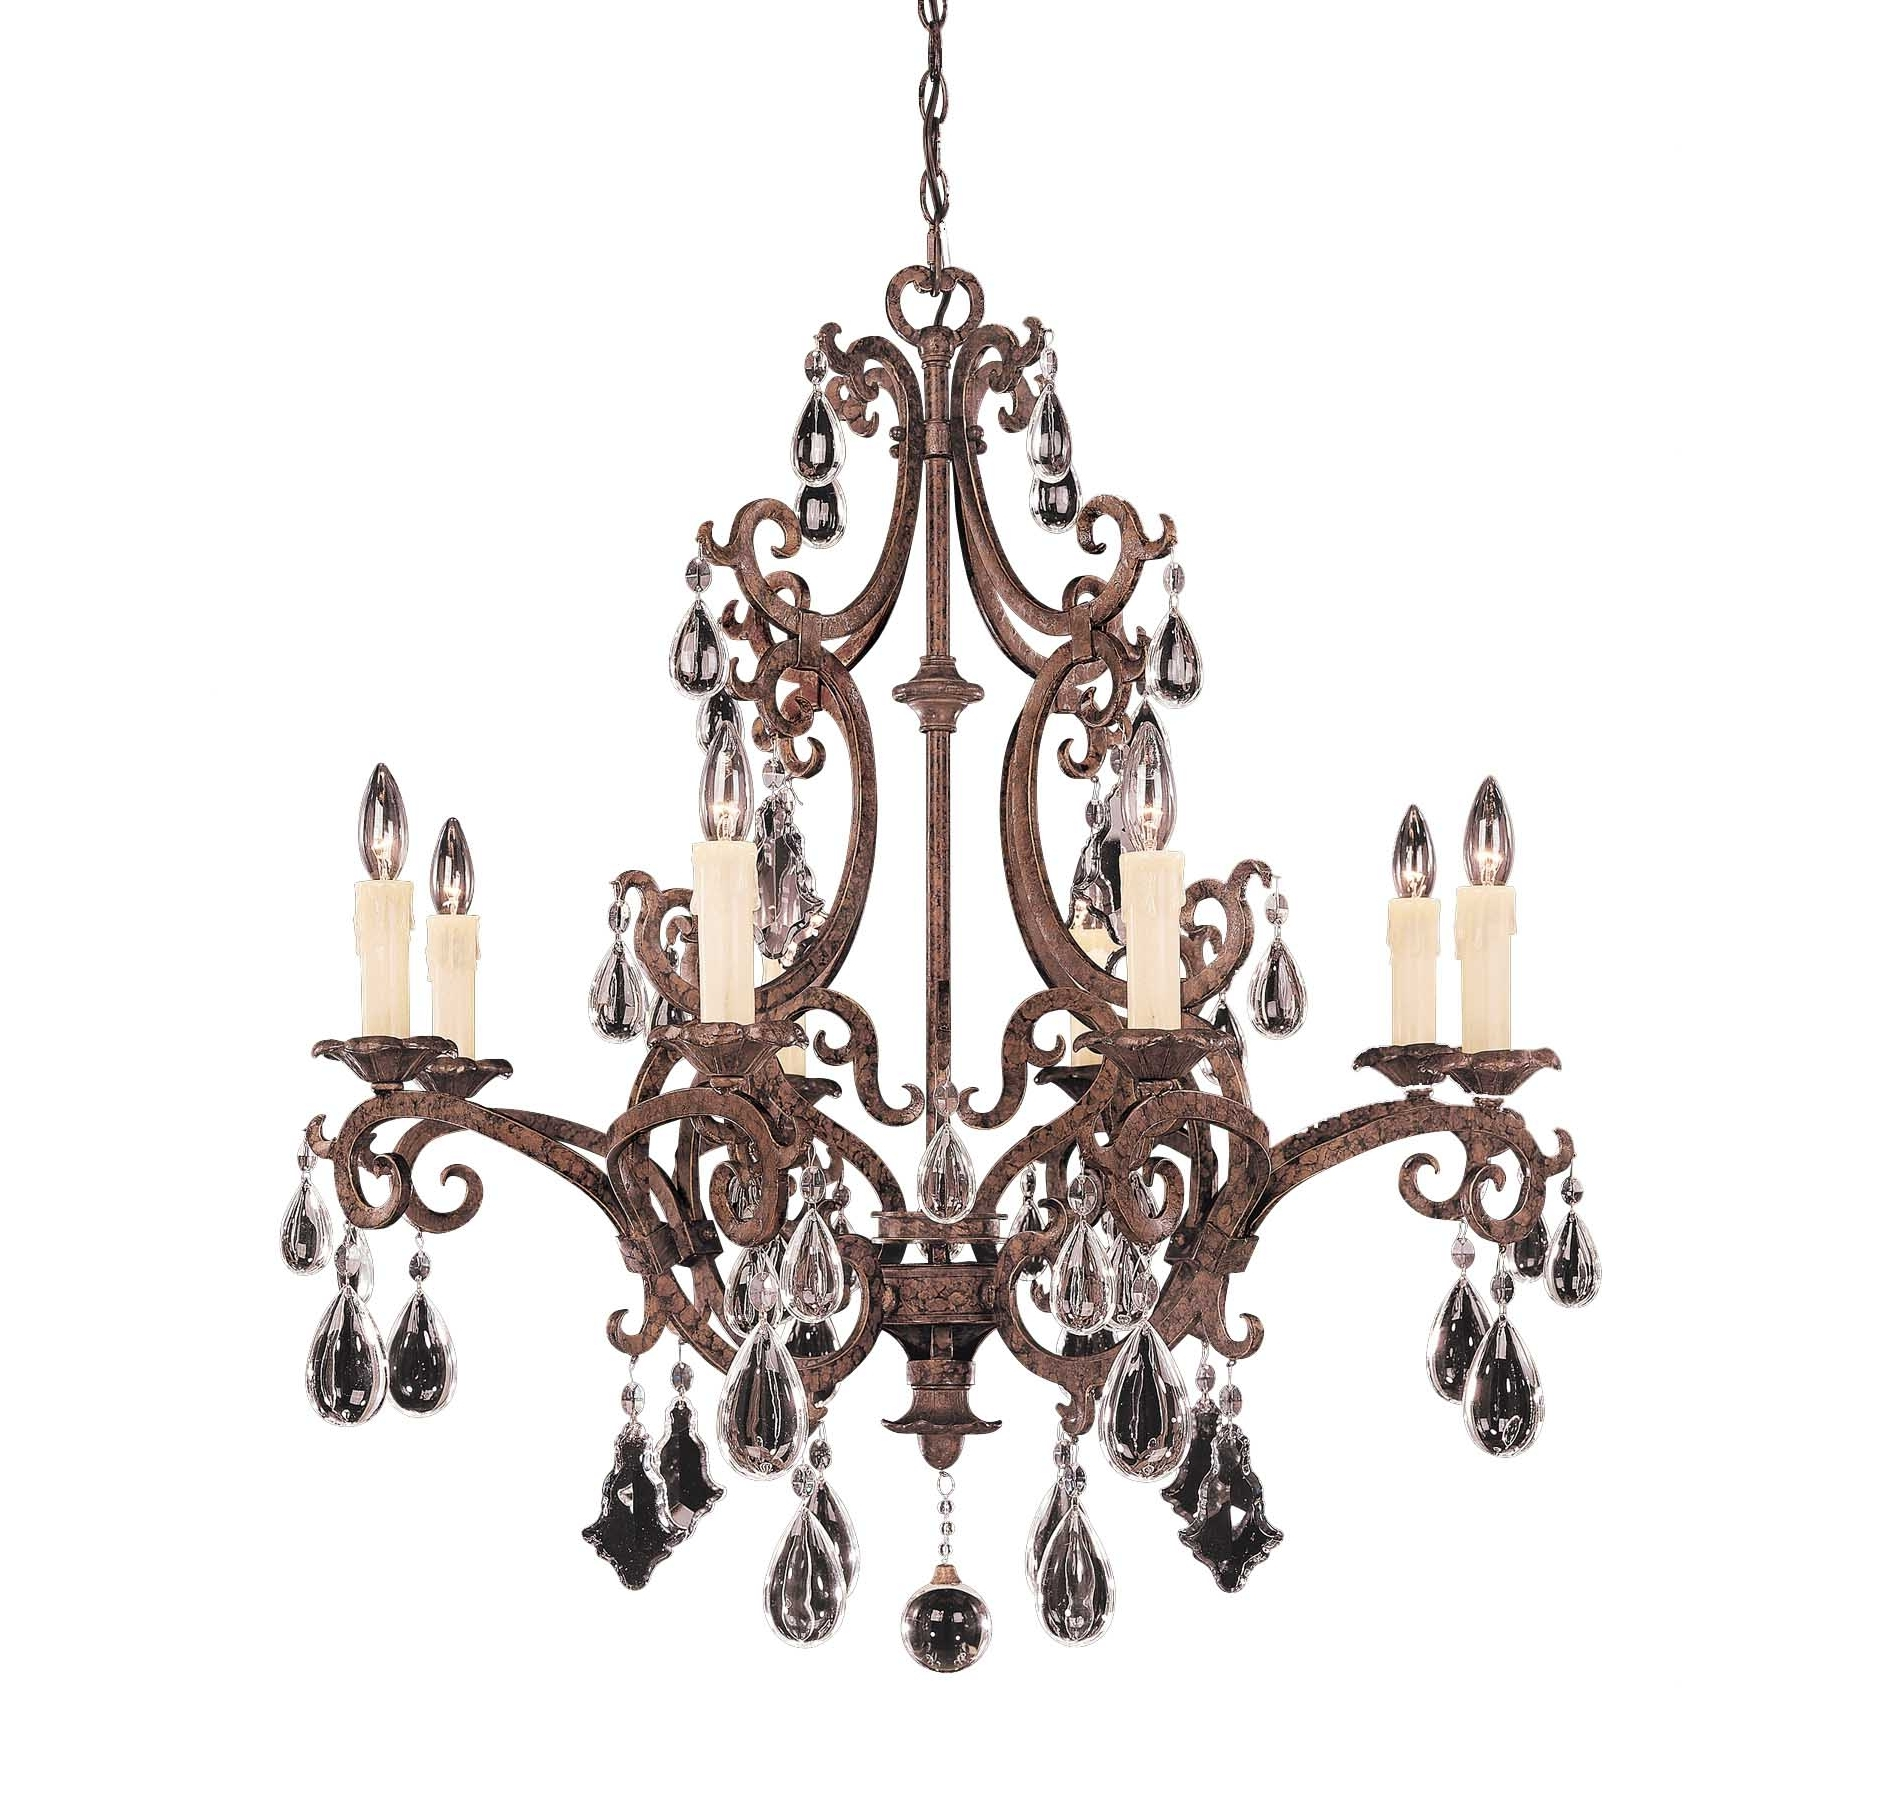 2017 Traditional Chandeliers With Regard To The Fine Fabric Of Space And Taste Of Crystal Chandeliers – Blog (View 1 of 15)